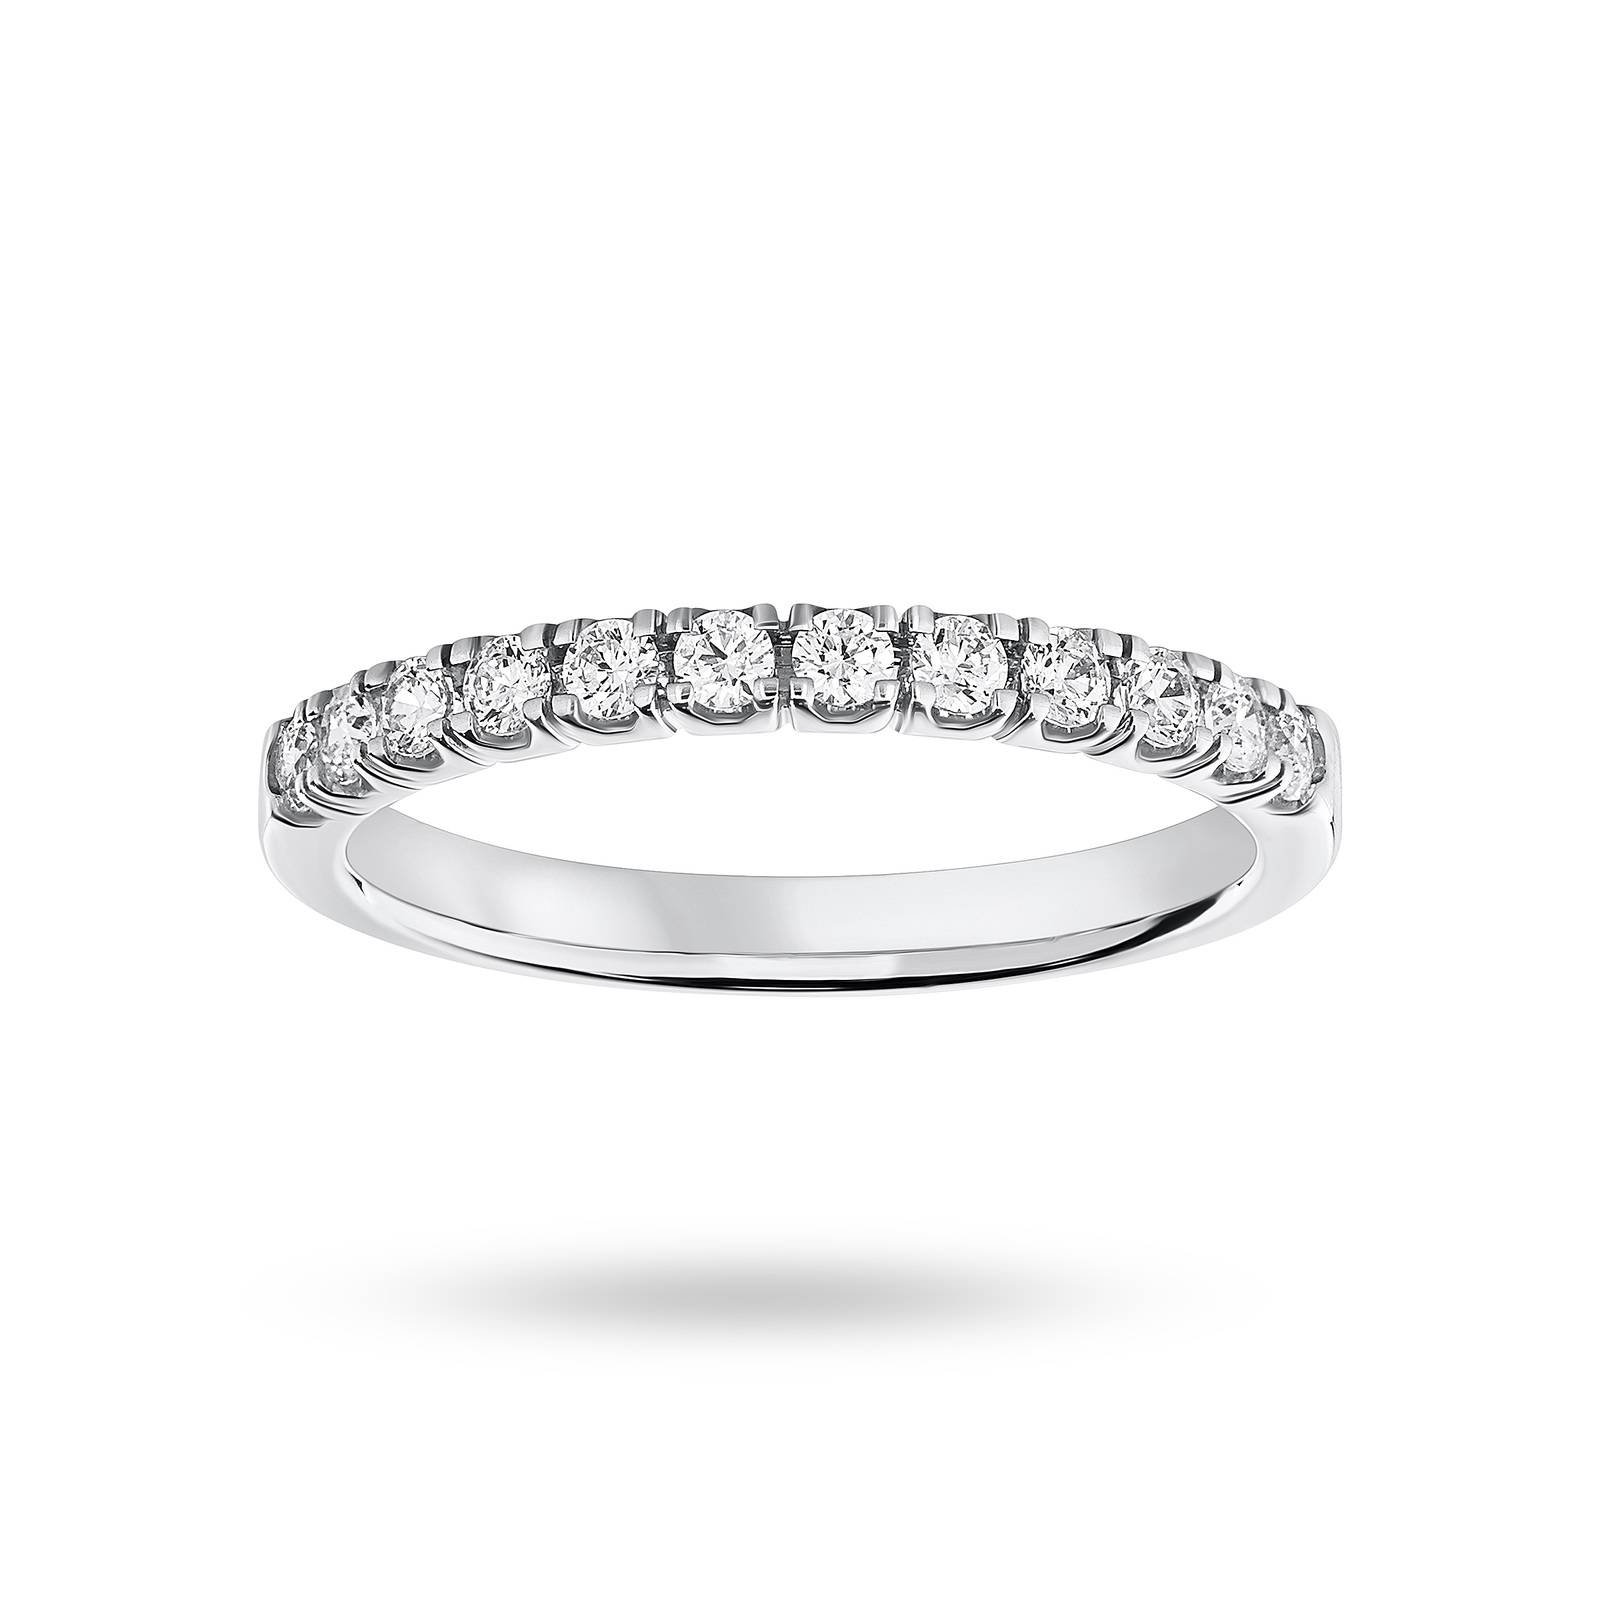 Platinum 0.33 Carat Brilliant Cut Under Bezel Half Eternity Ring